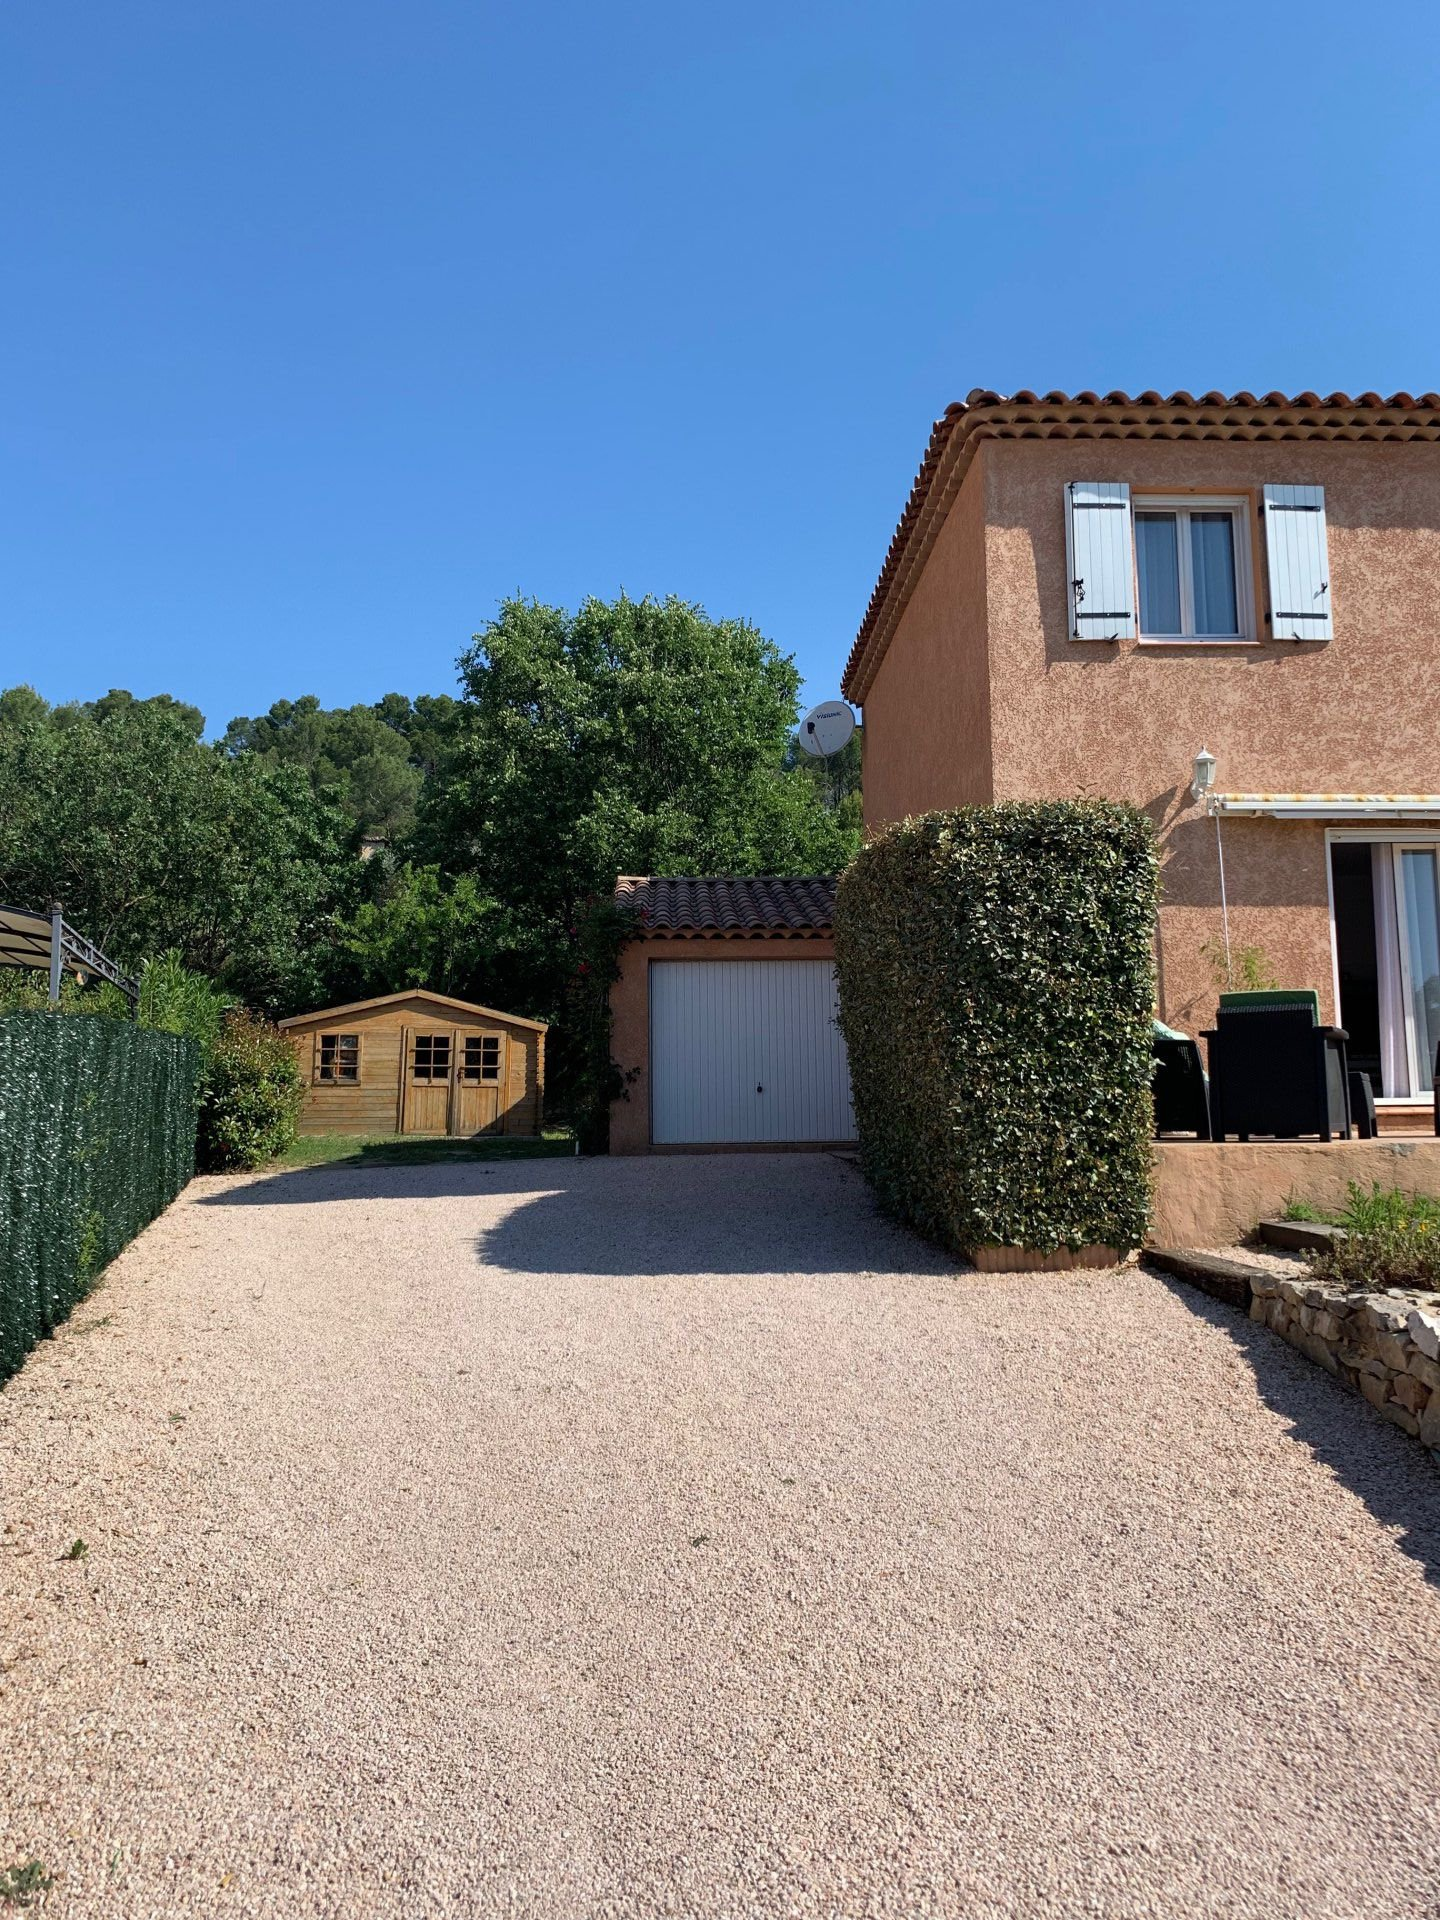 3 bedroom house overlooking Sainte Baume